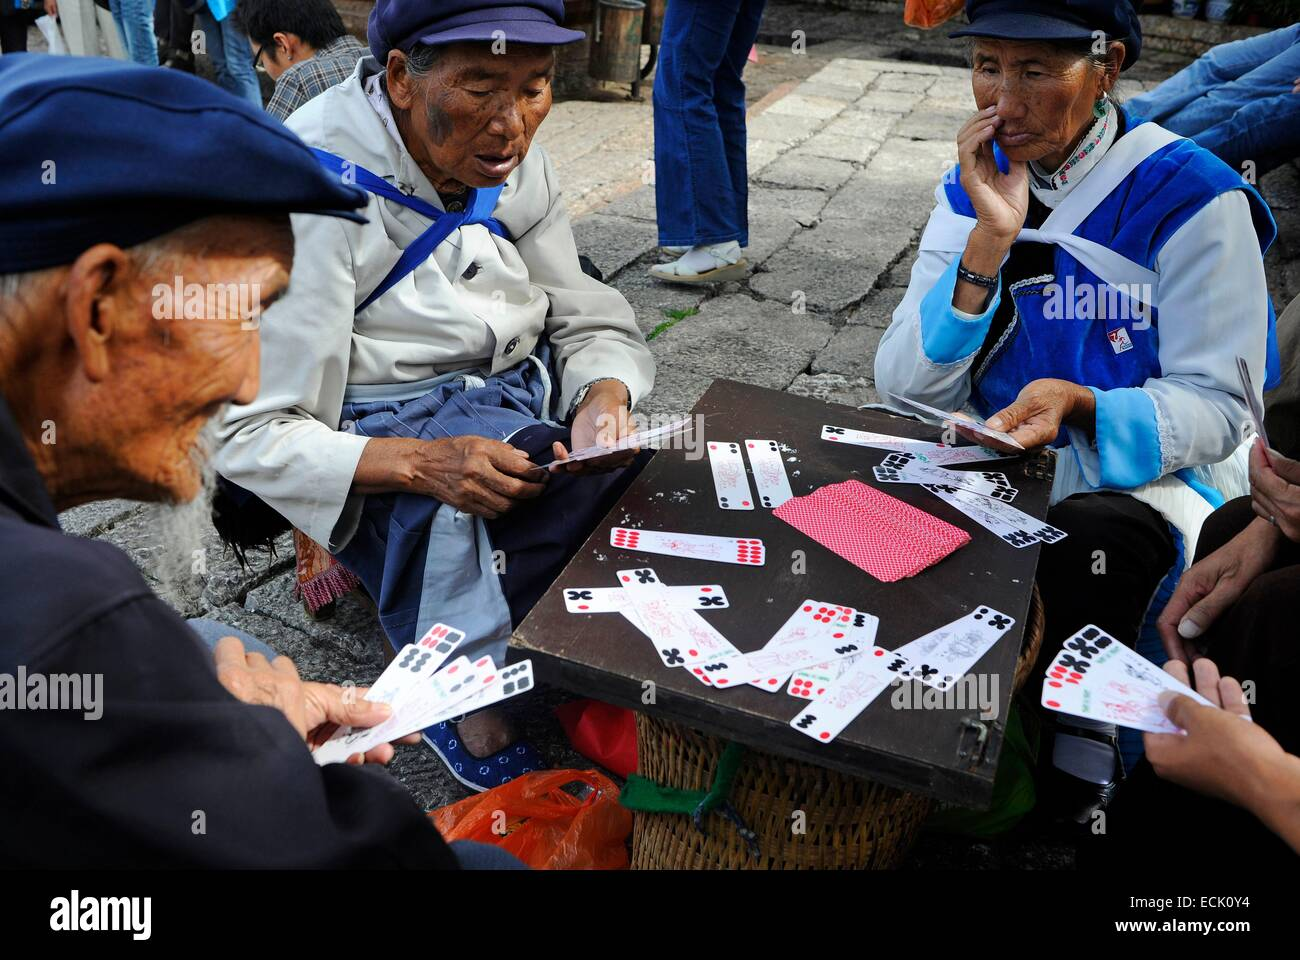 China, Yunnan Province, Lijiang, Naxi women playing cards - Stock Image